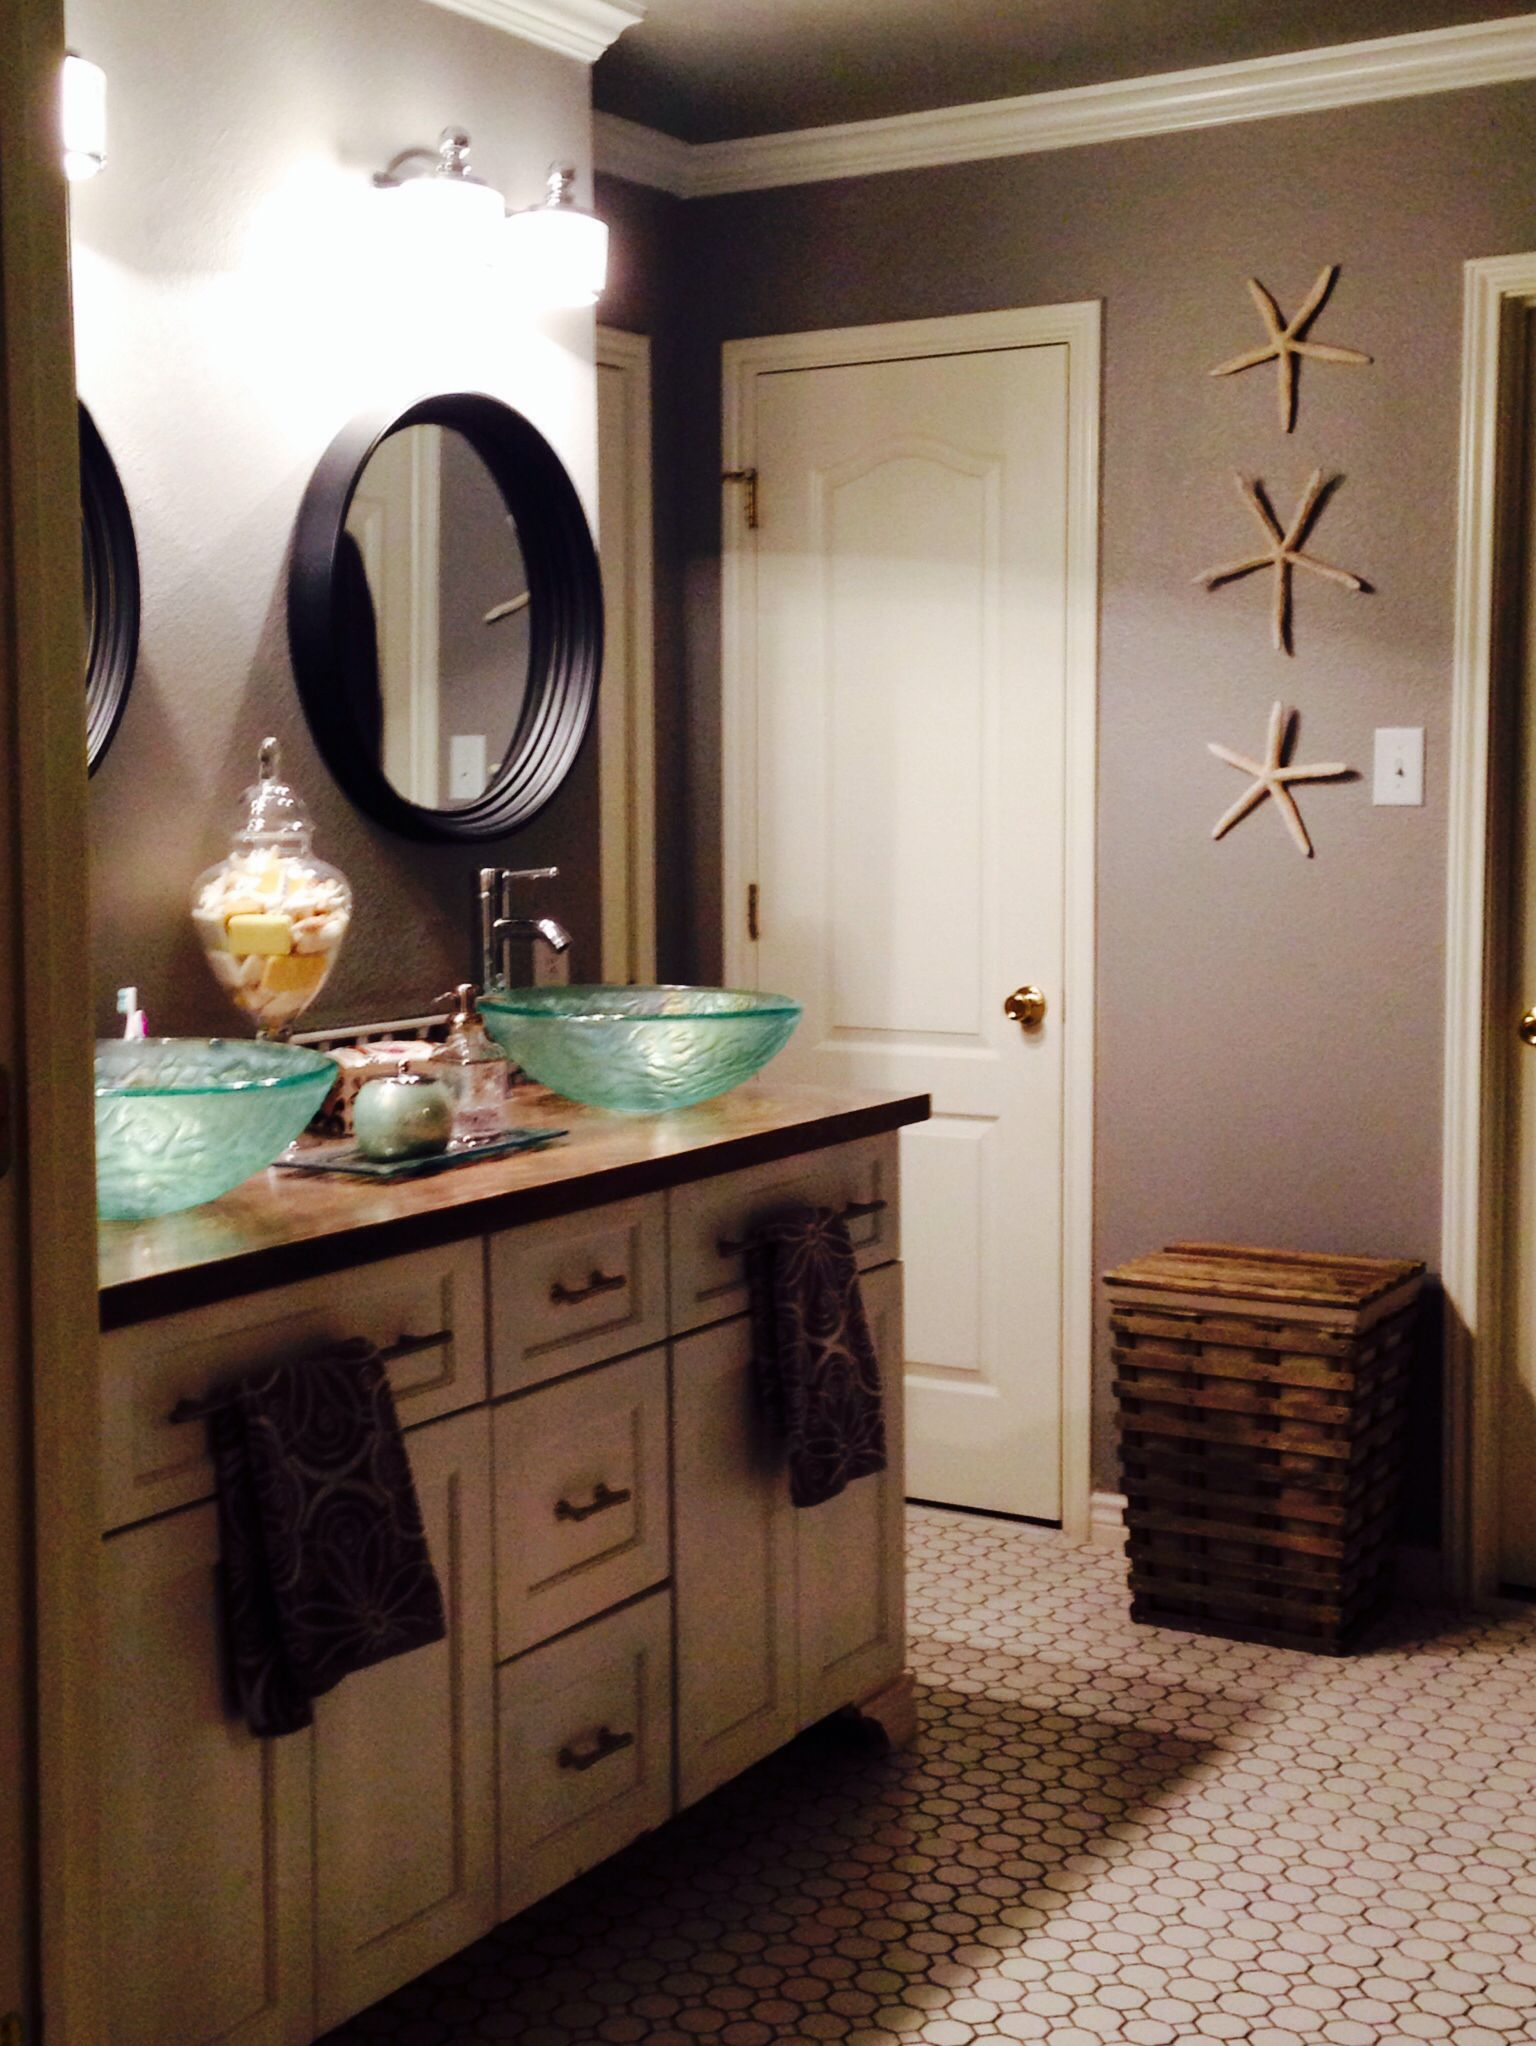 Diy Bathroom Remodel On A Budget For The Home Pinterest